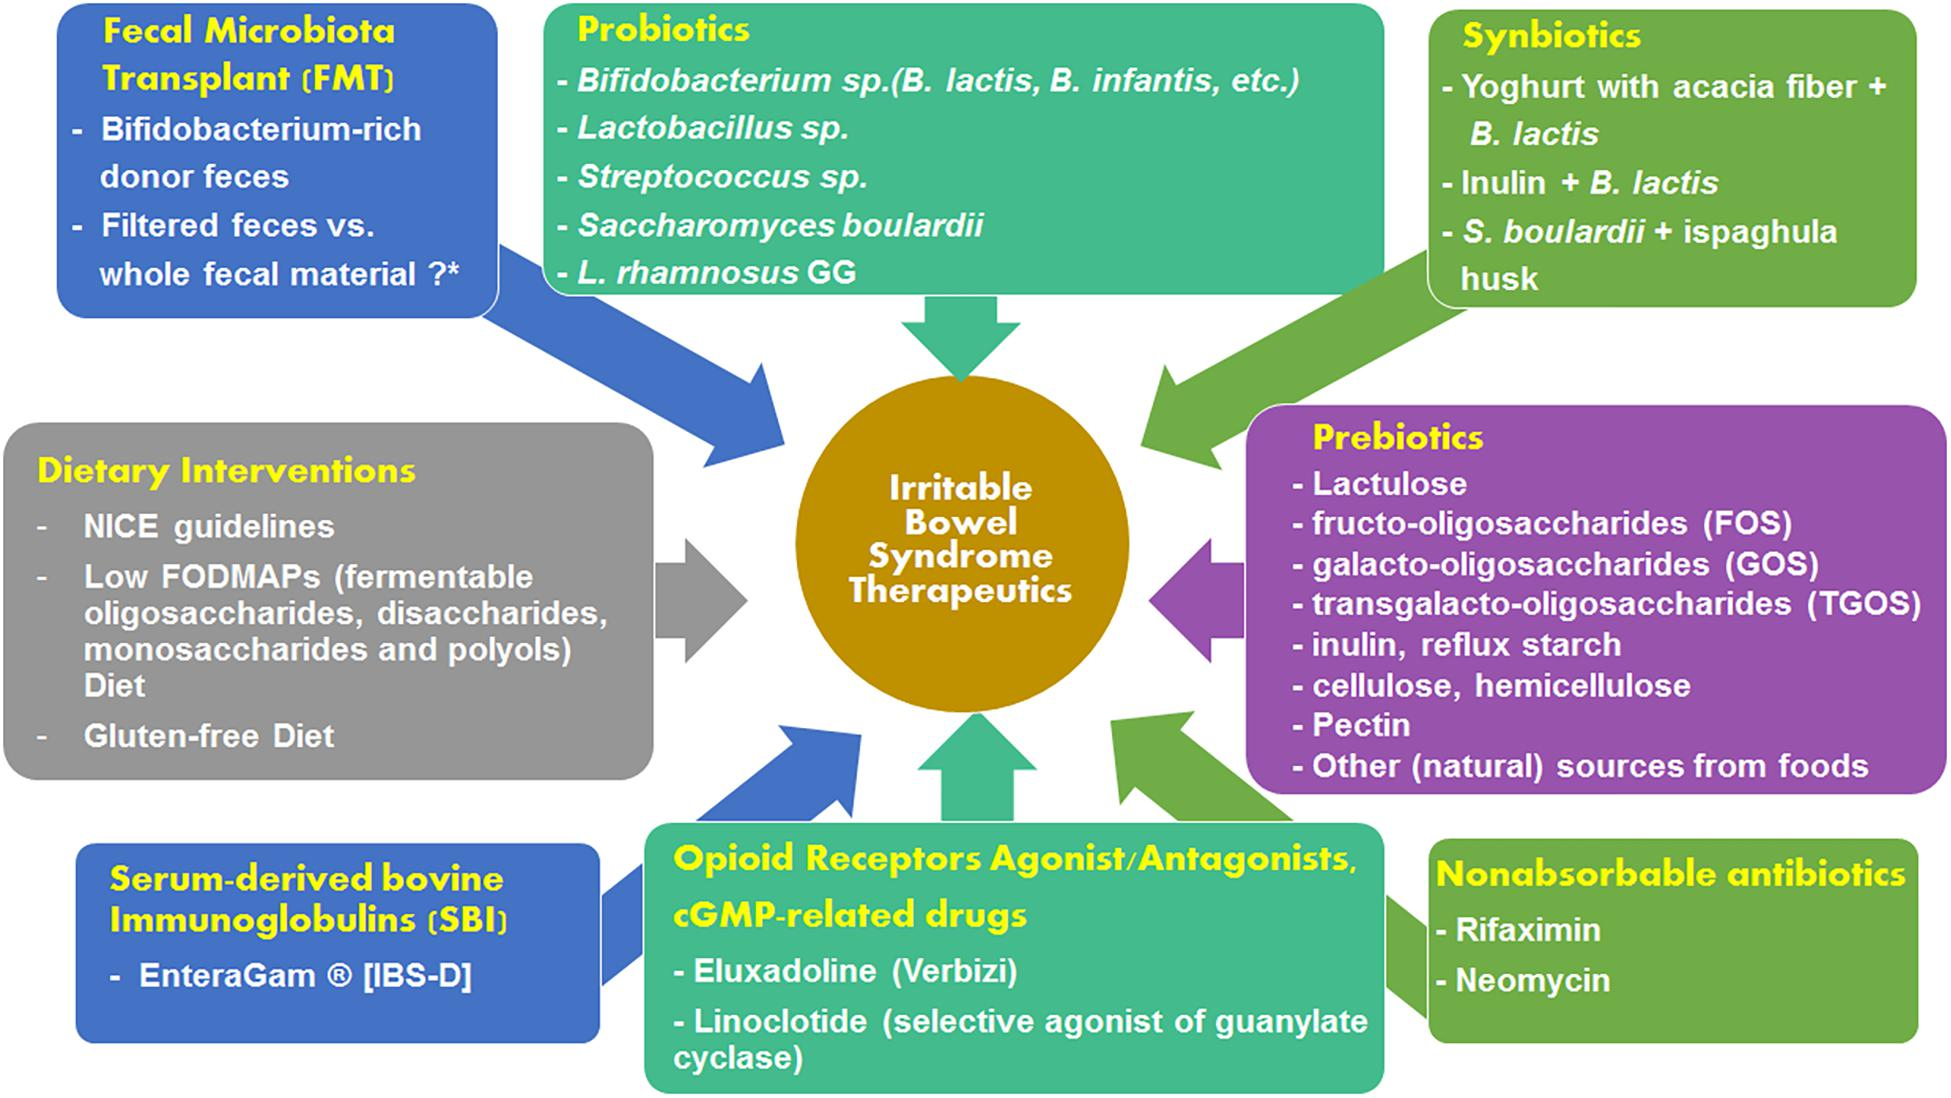 Frontiers | The Microbiome and Irritable Bowel Syndrome – A Review